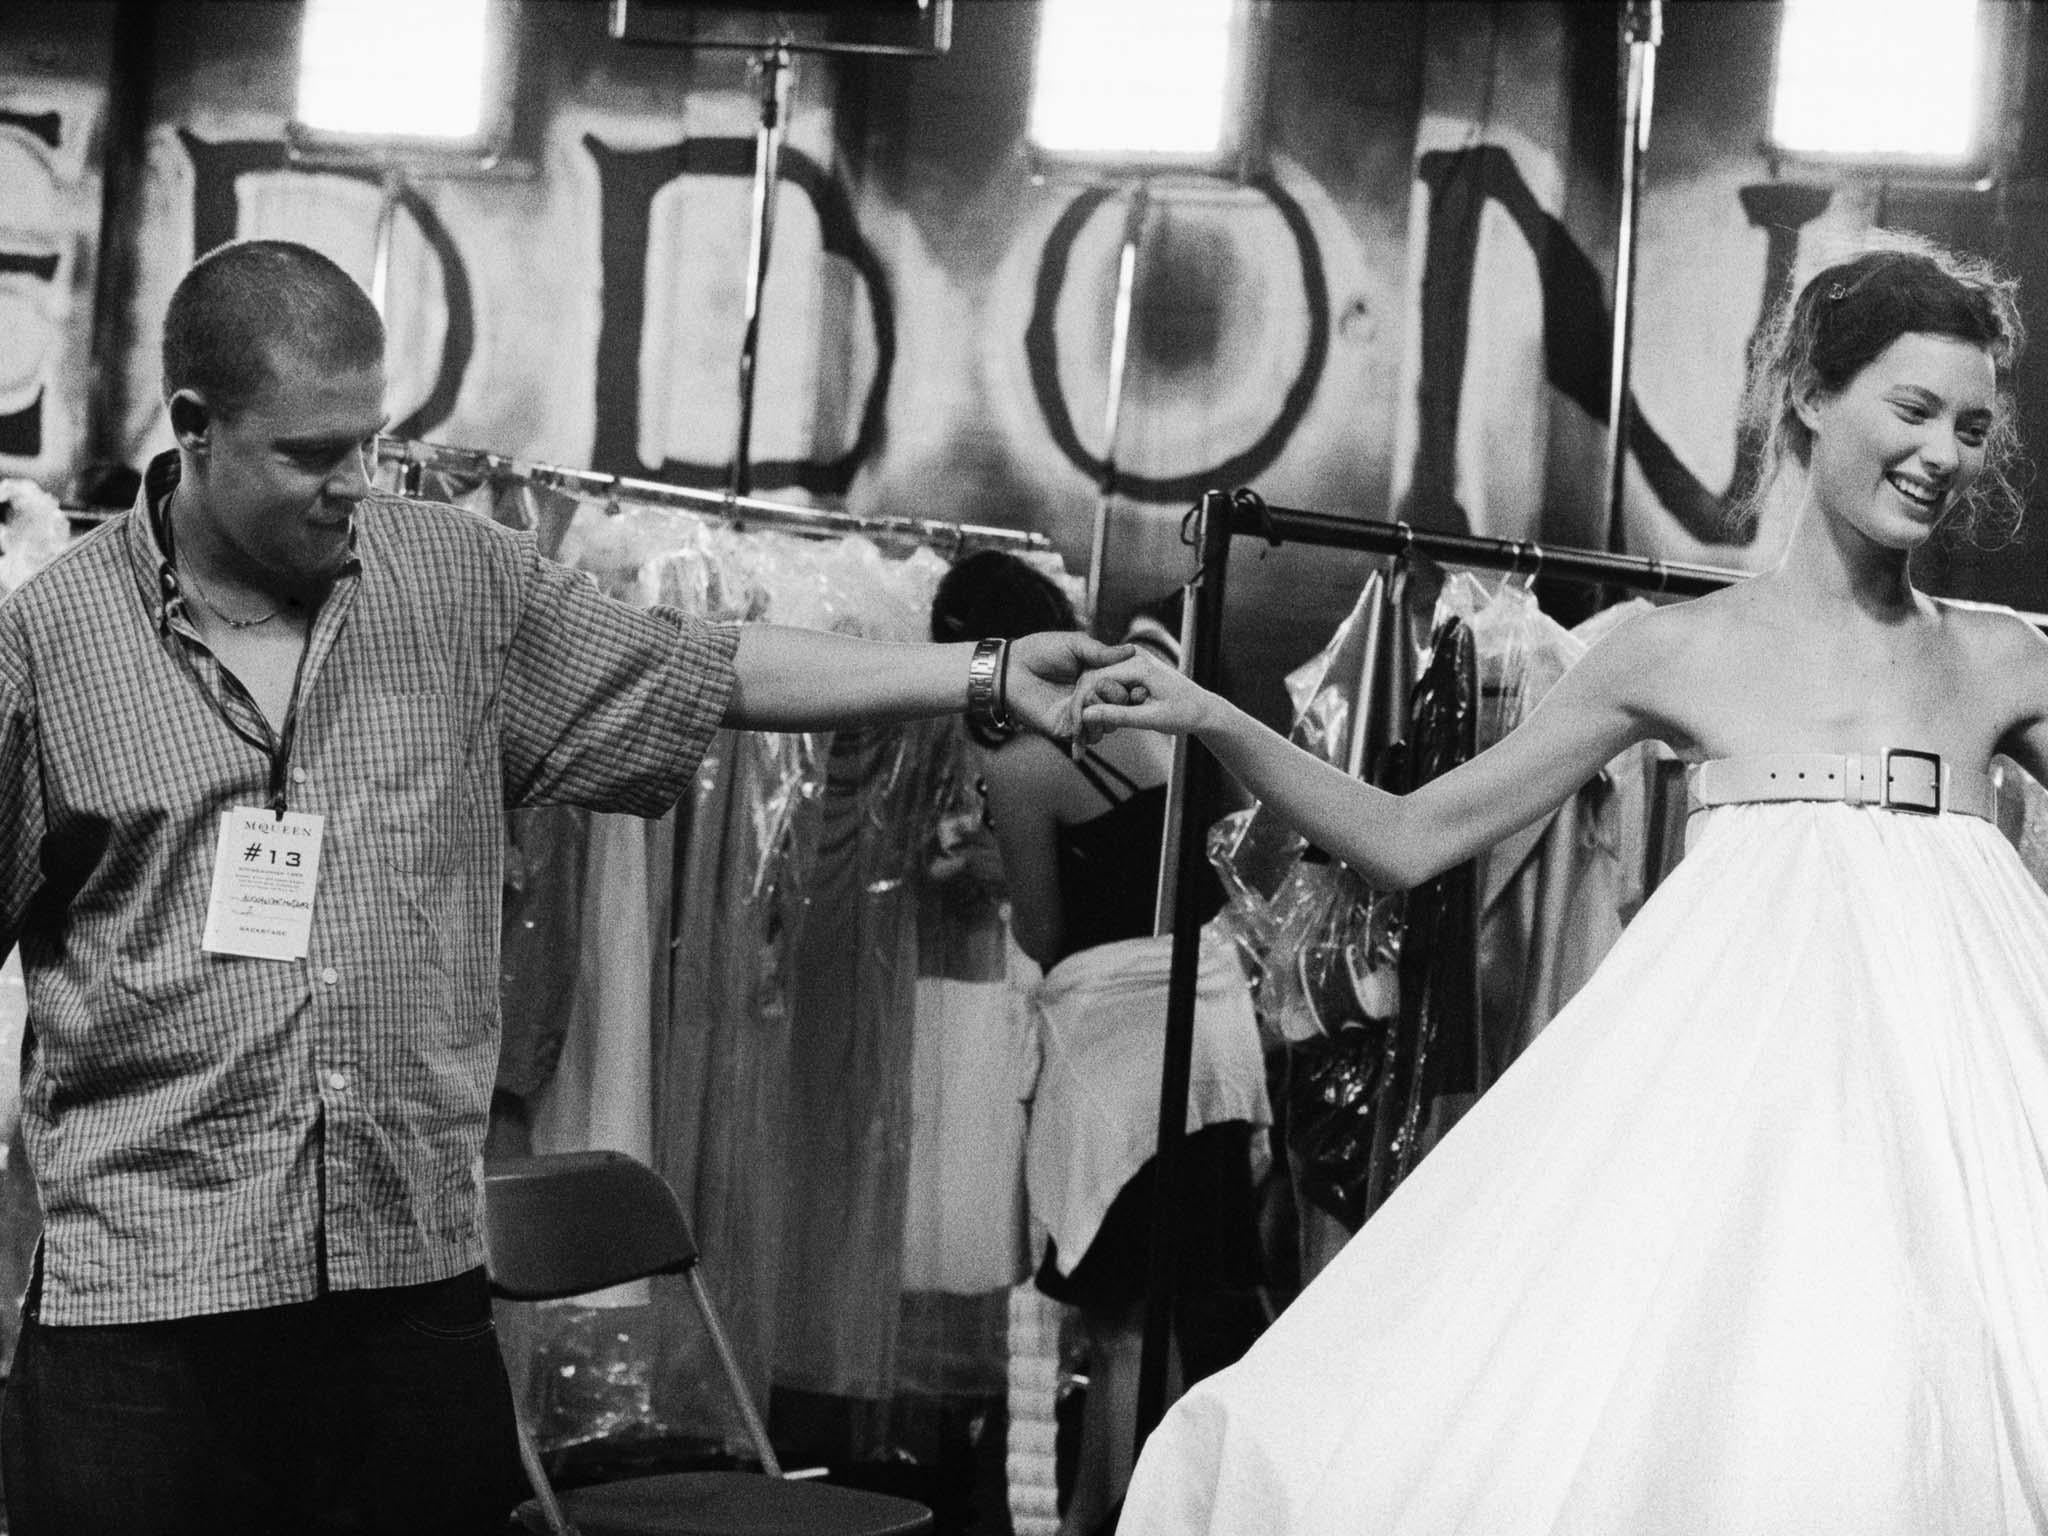 Alexander Mcqueen Proved Money Doesn T Bring You Happiness But Will The Truth Of His Character Be Revealed In Latest Documentary The Independent The Independent